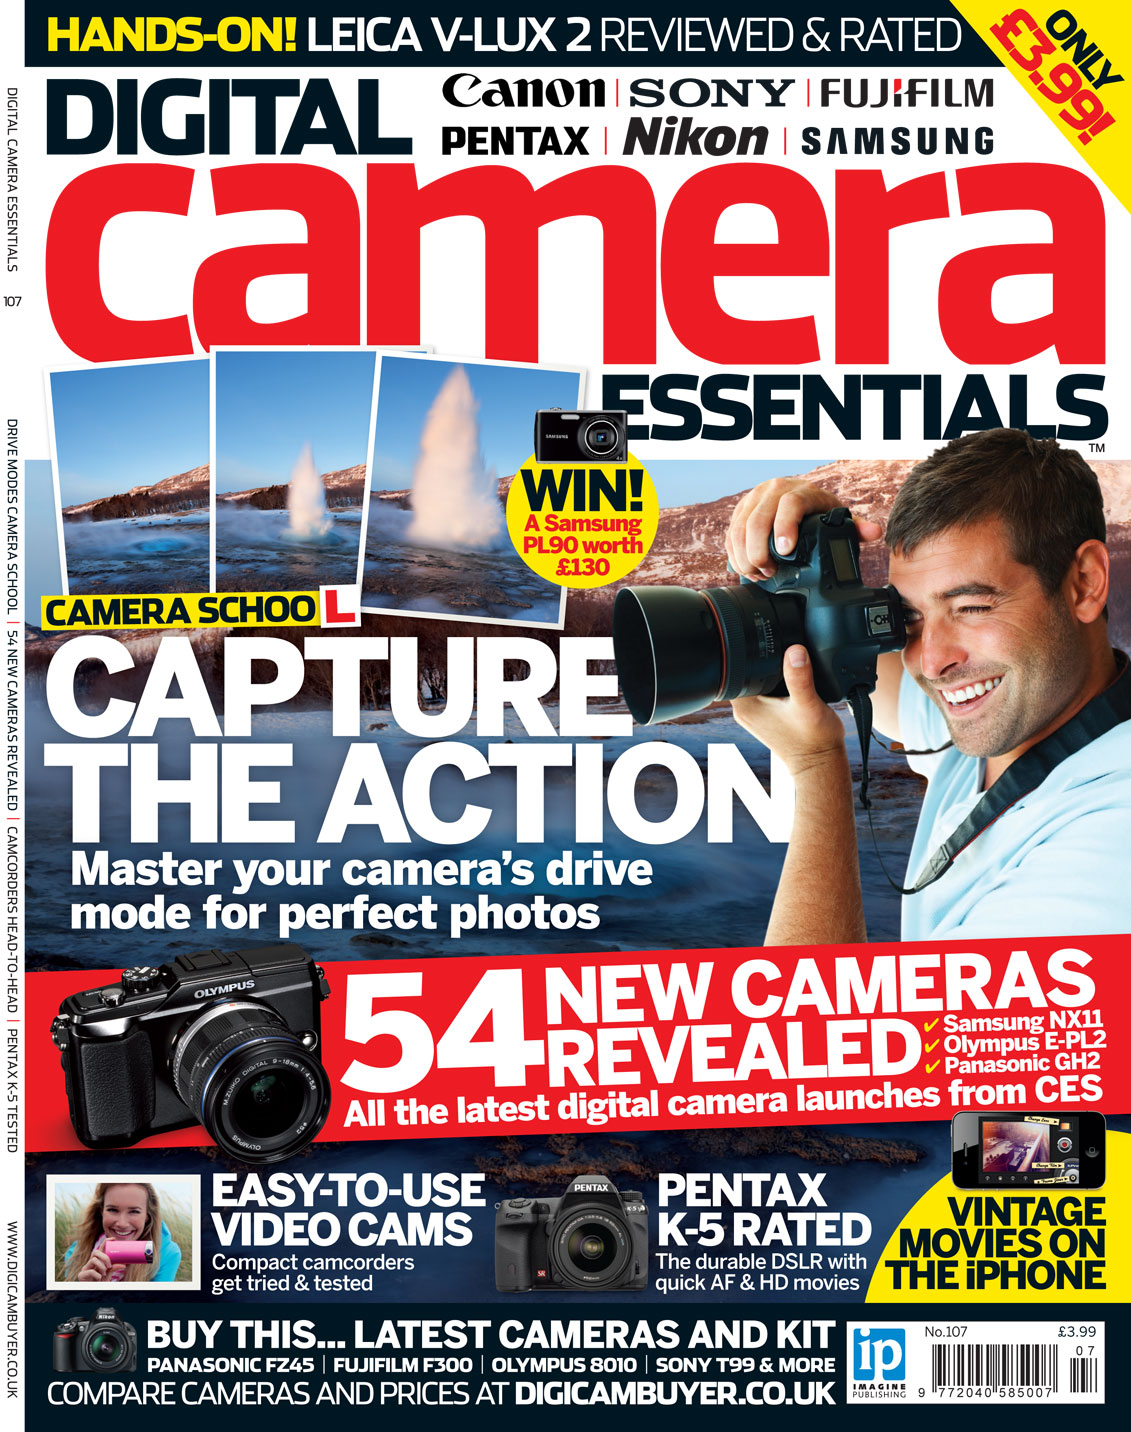 Digital Camera Essentials Articles